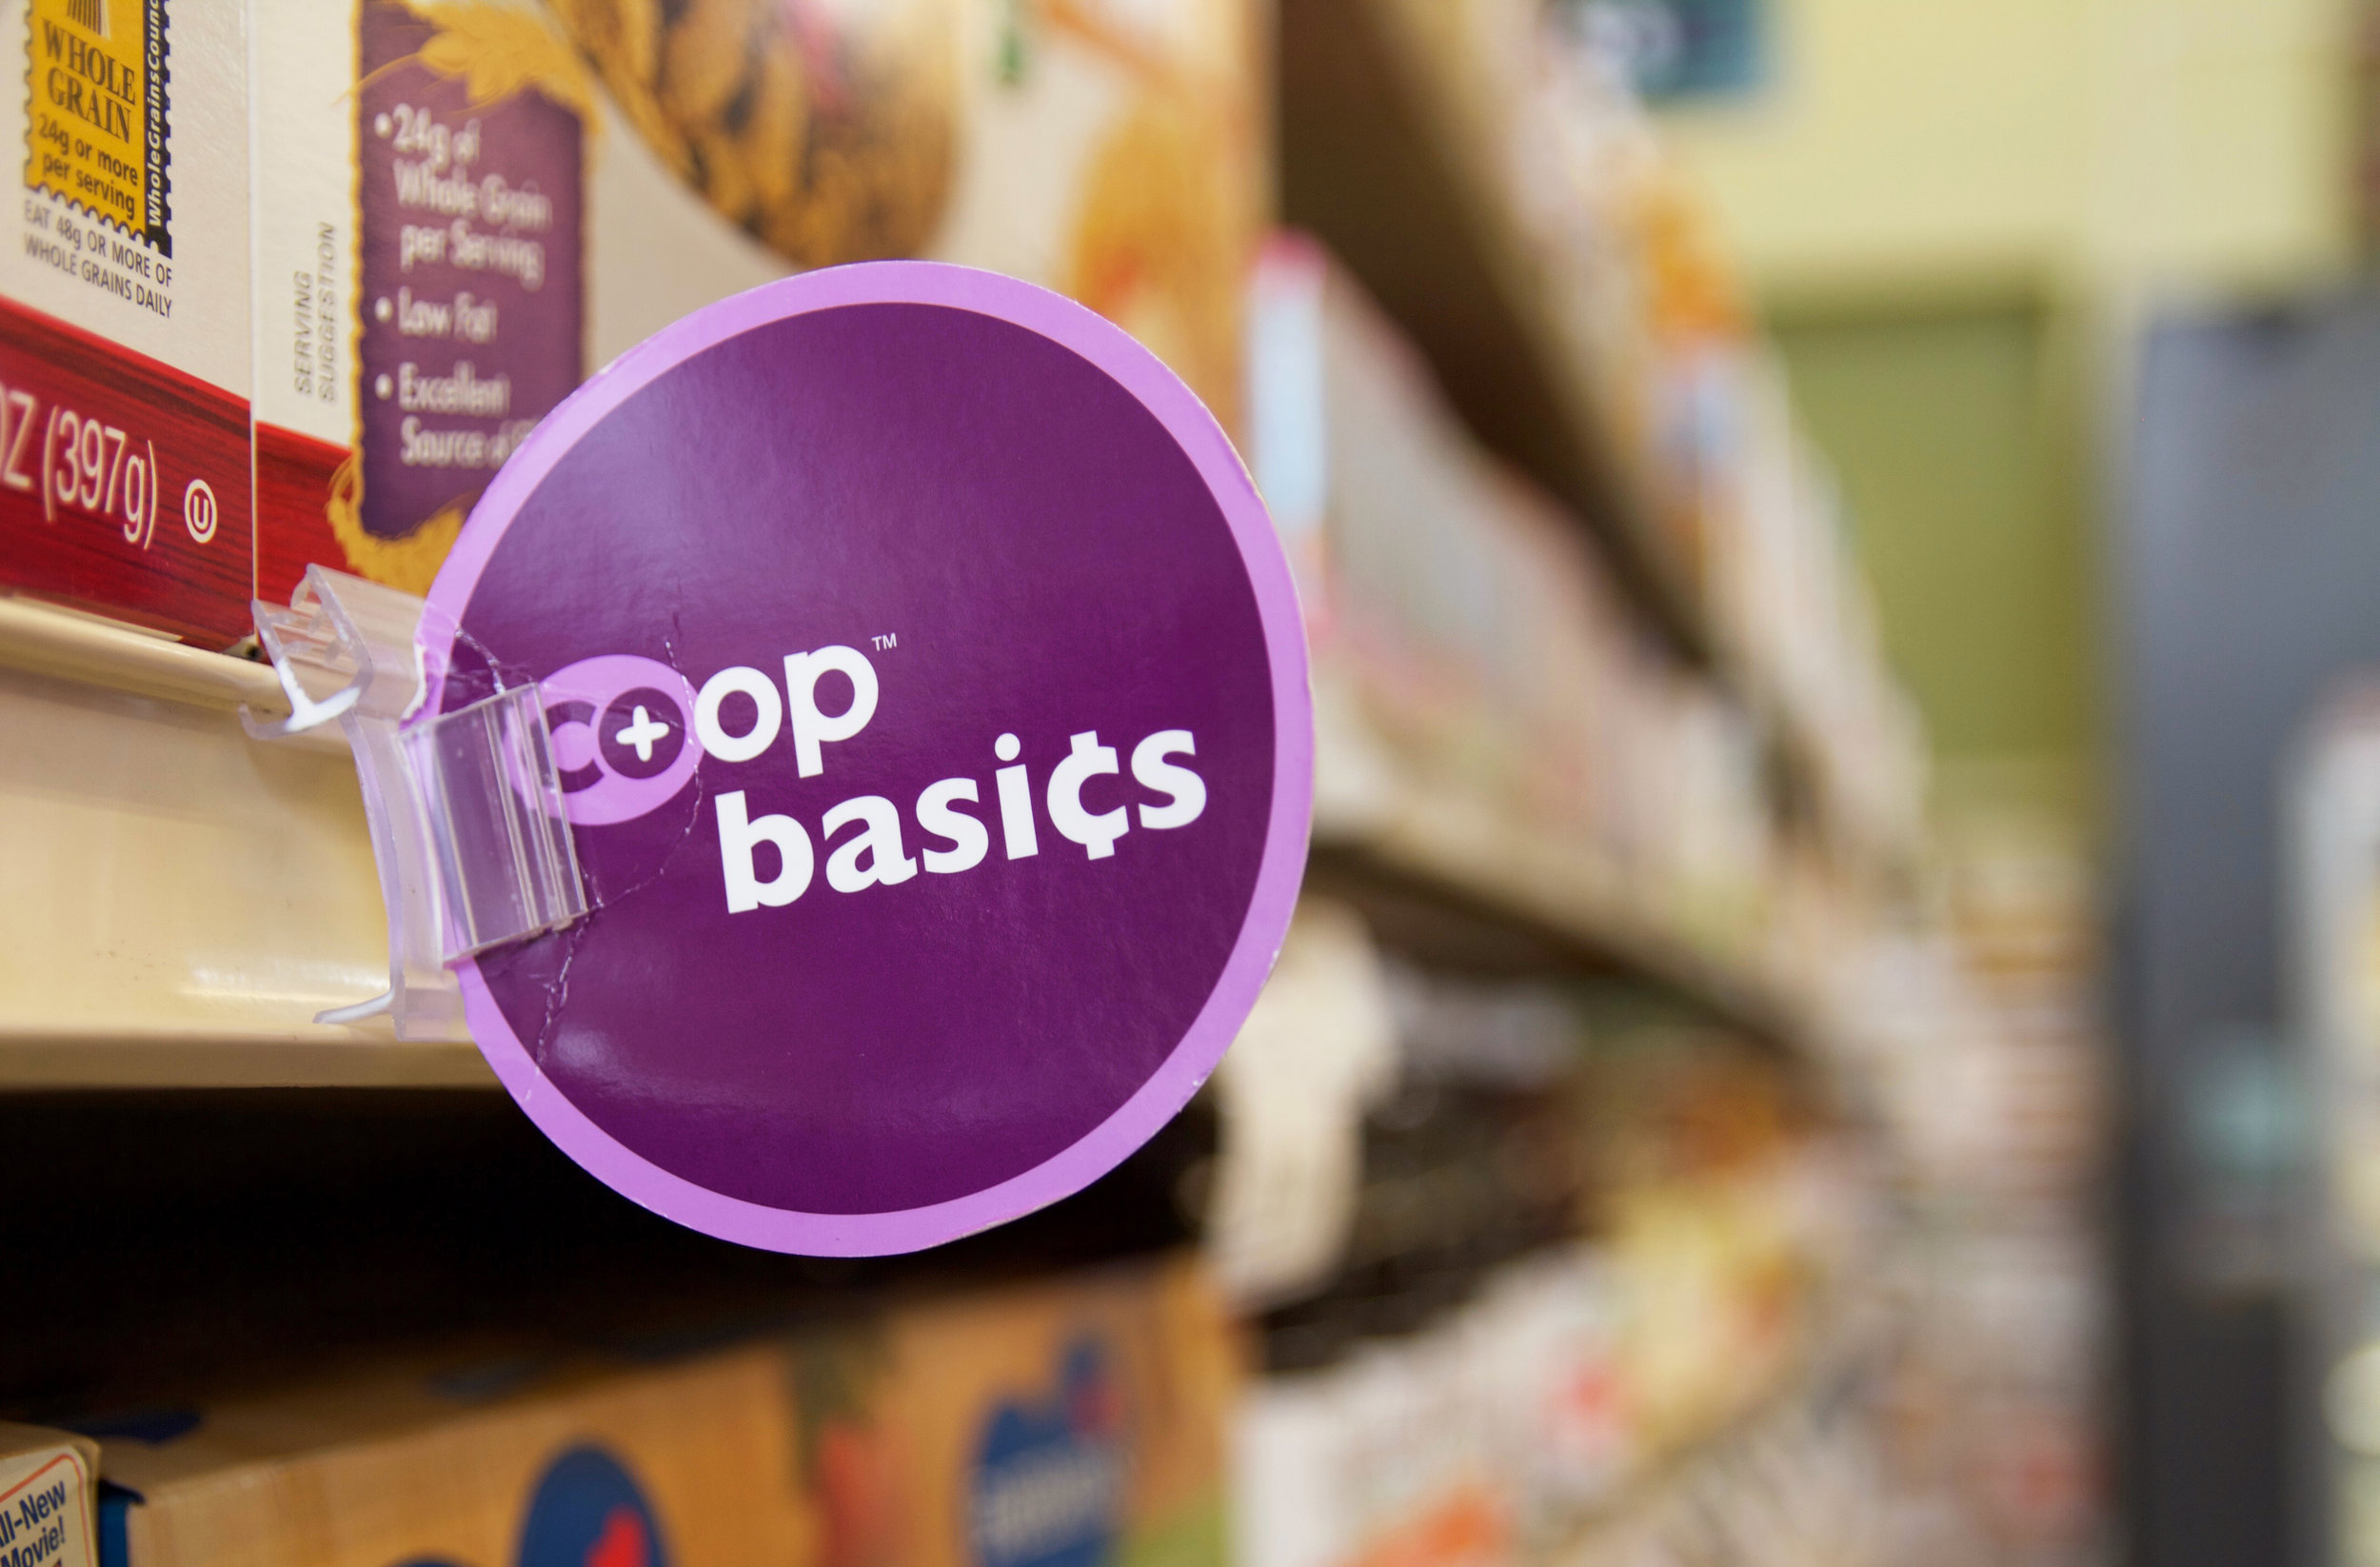 Co-op Basics, everyday low price